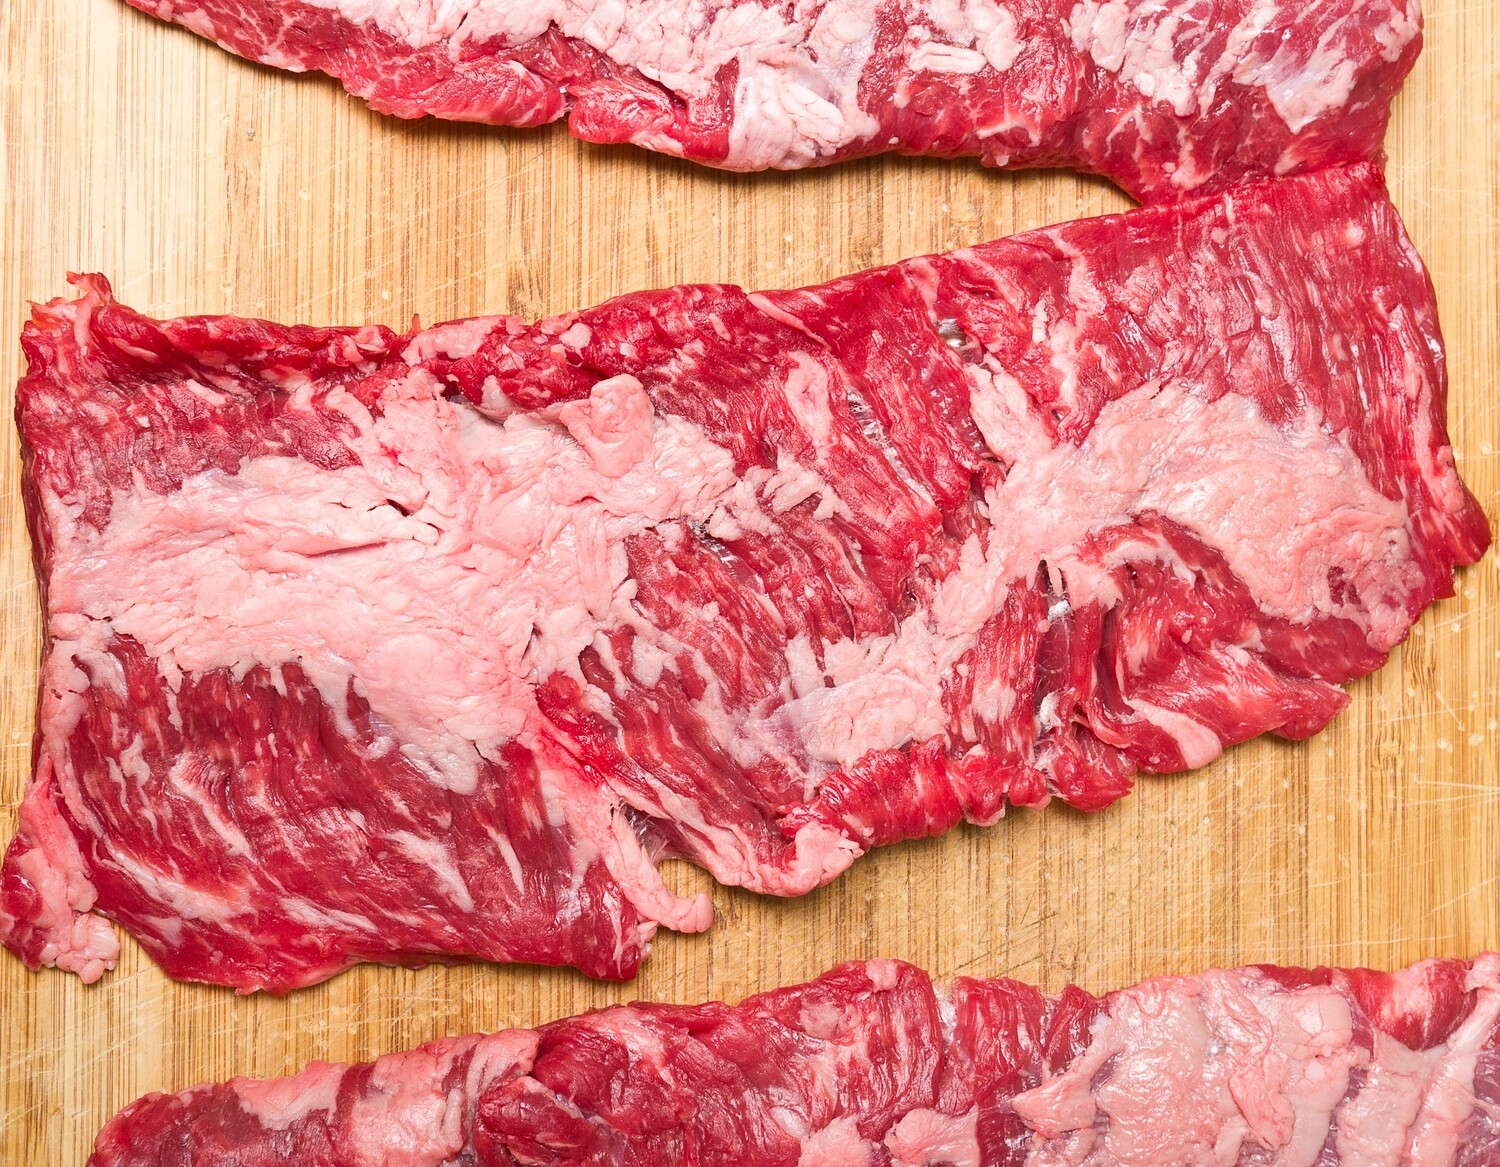 8oz Angus Skirt Steak (Sold in 4PK)